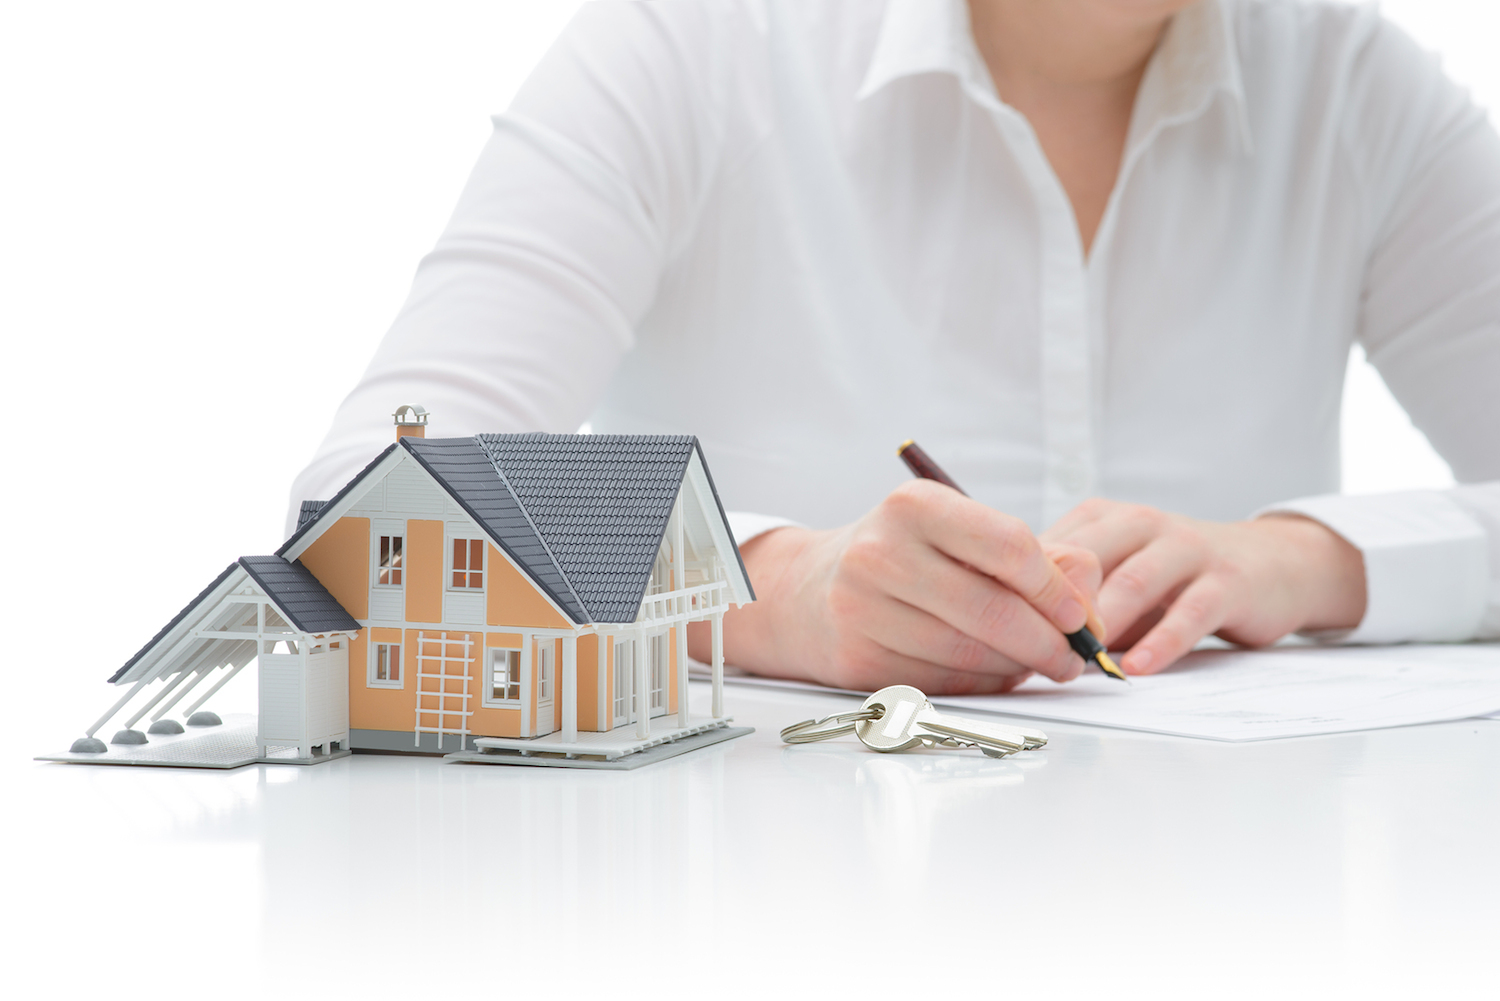 Home Buying Contingency Removal Under Purchase Contract Elizabeth Weintraub